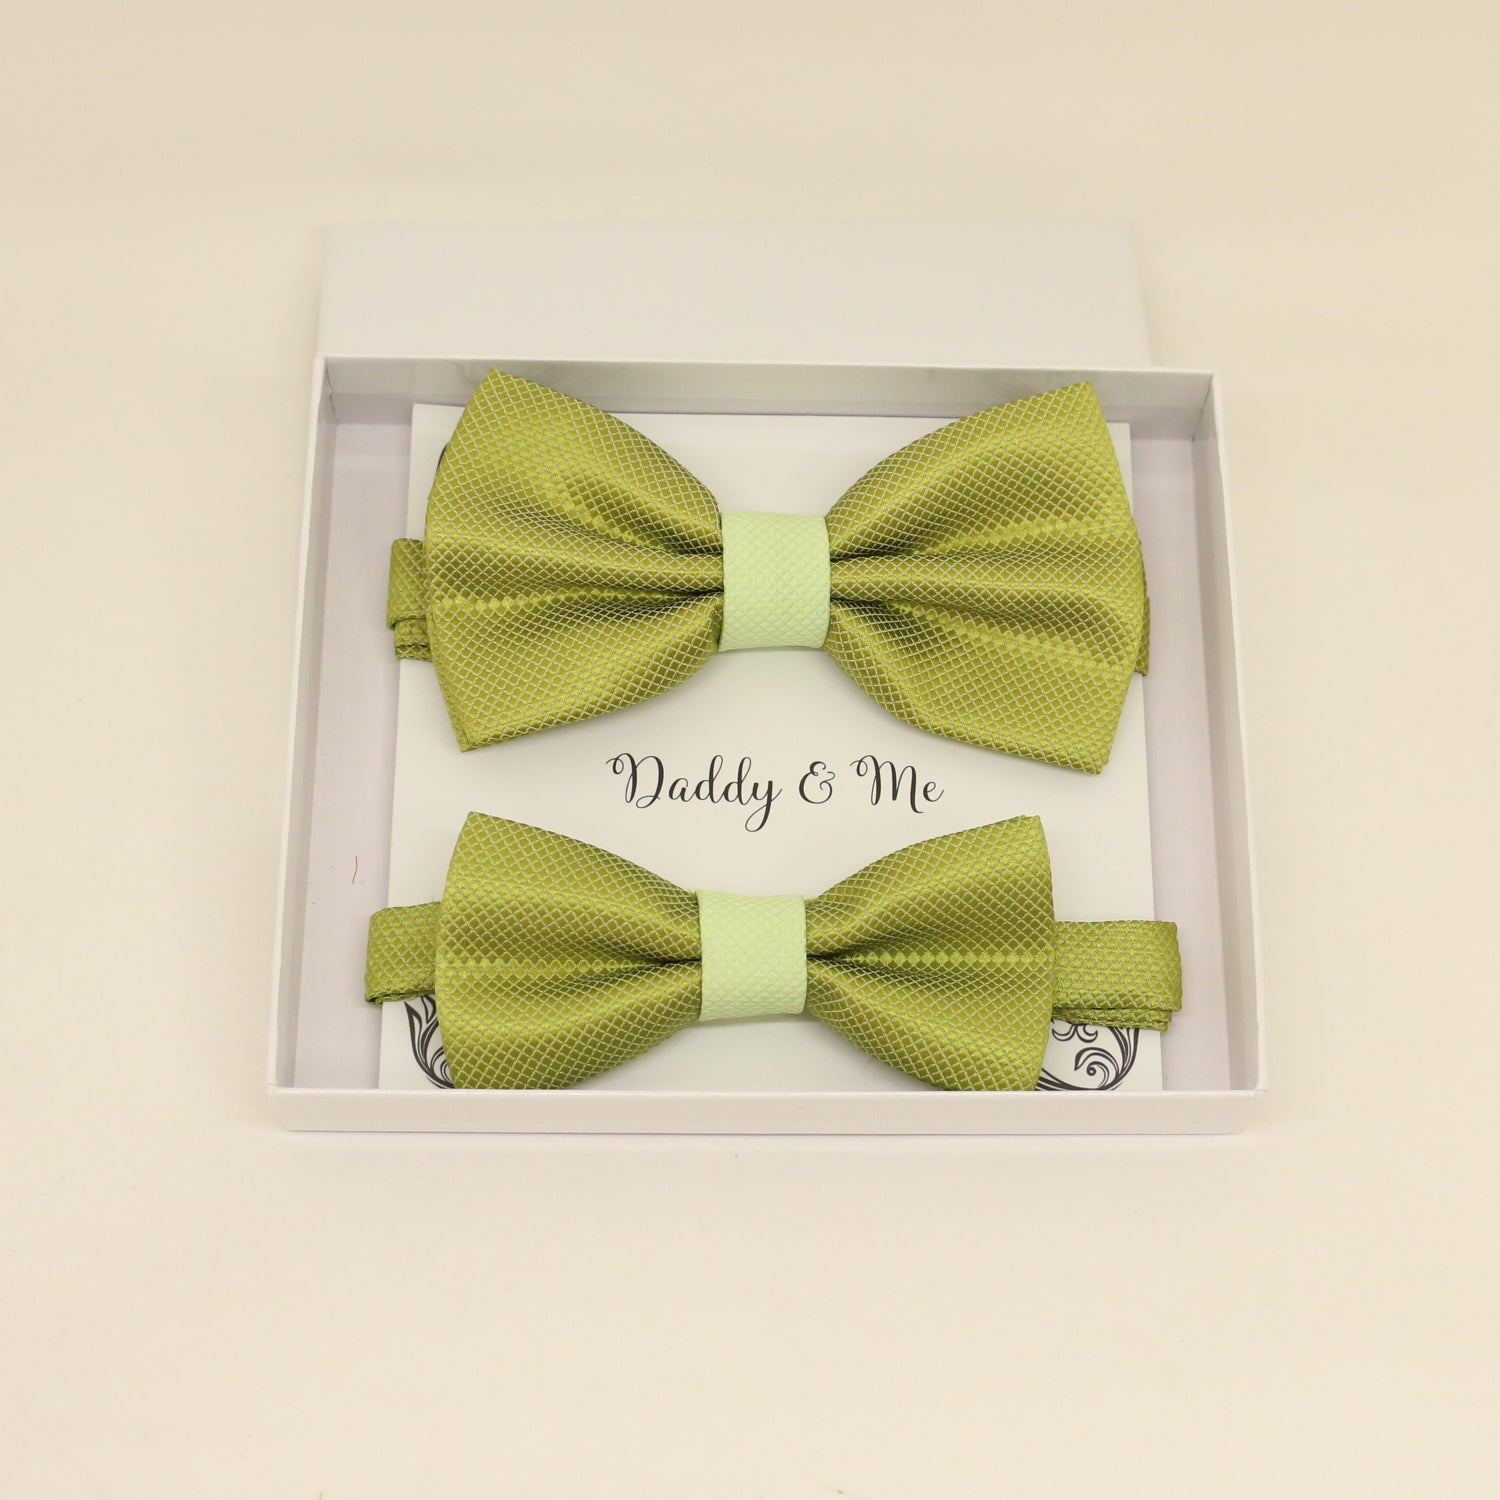 Green Bow tie set for daddy and son, Daddy and me bow tie gift set, Grandpa and me, Green Kids Toddler bow, Green bow tie, Father son match